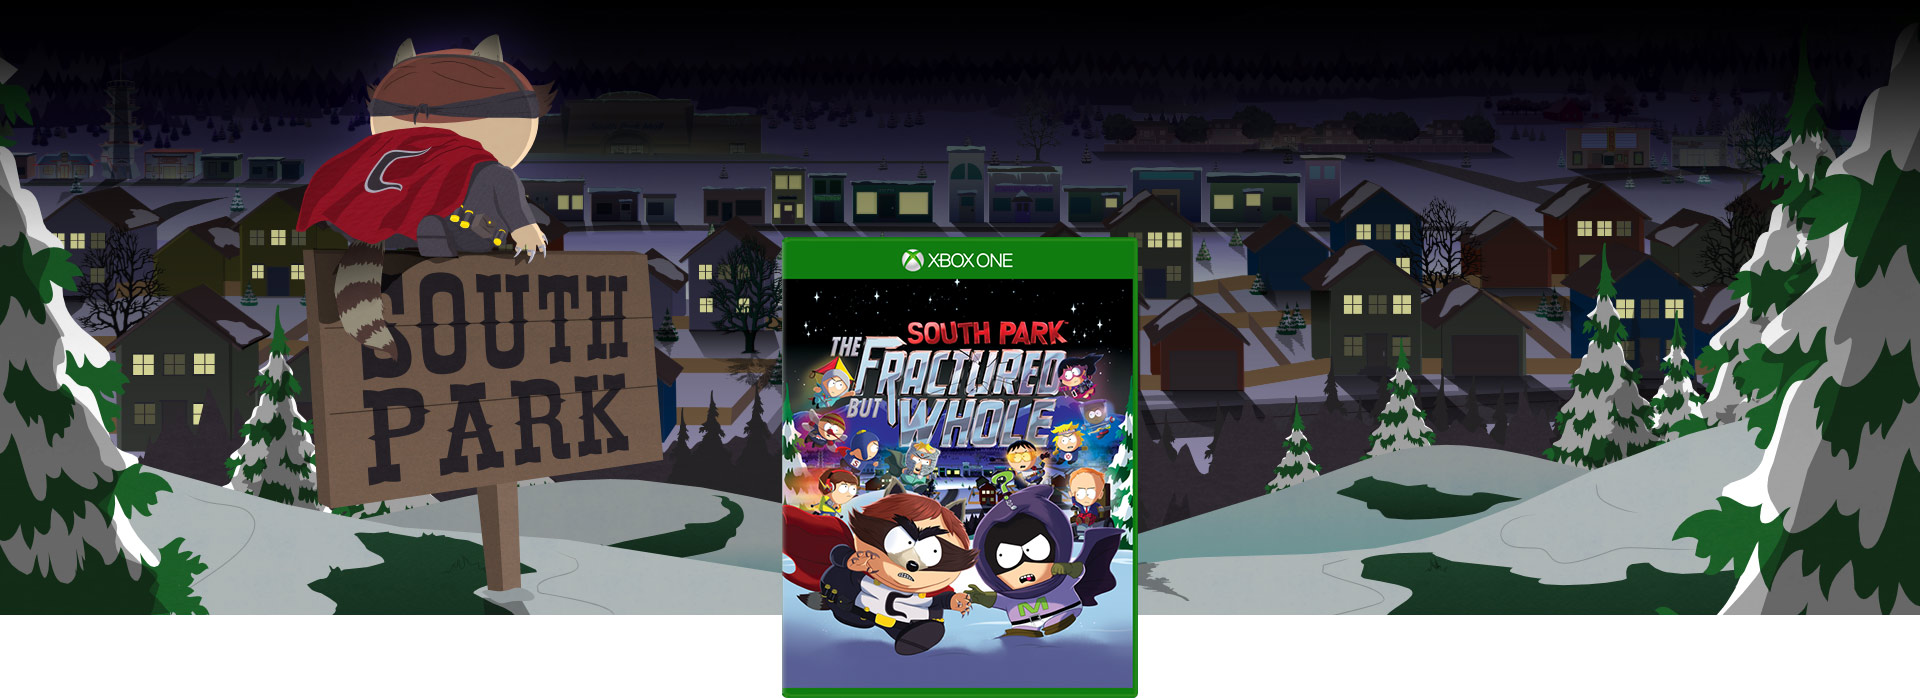 Image de la boîte de South Park: The Fractured But Whole